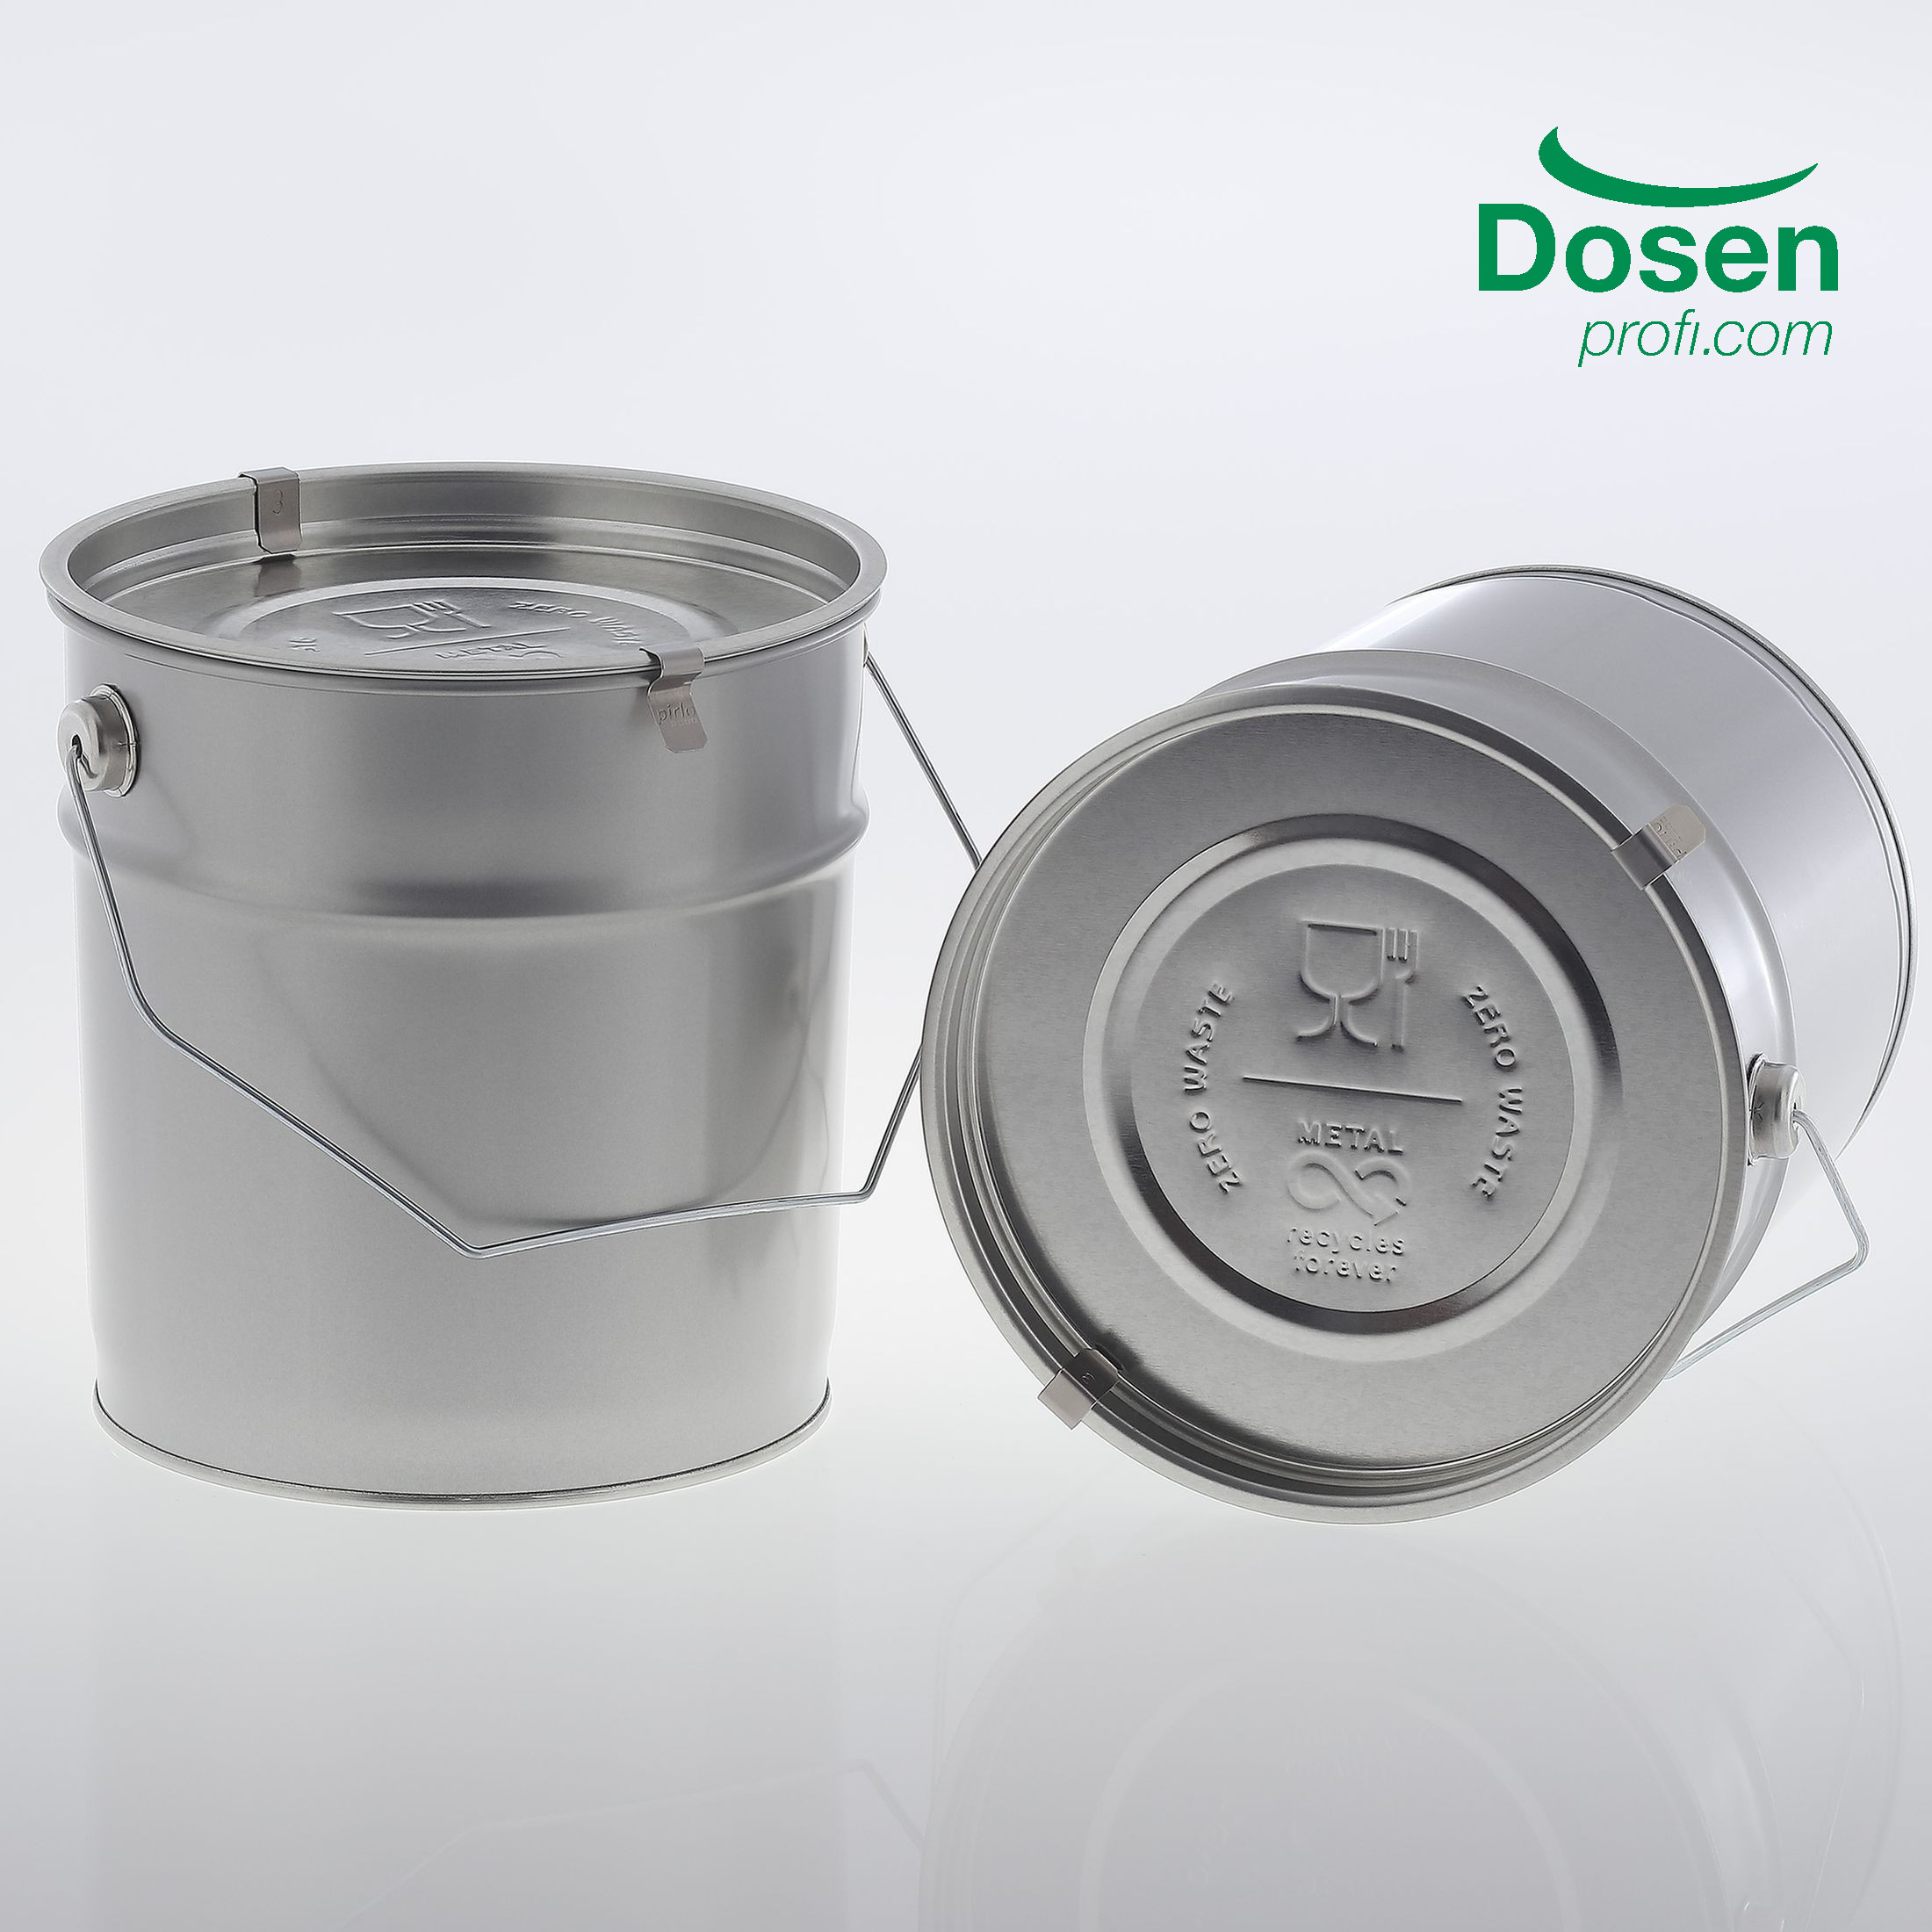 ZERO WASTE Metal pail 3 litre food safe with lid embossing